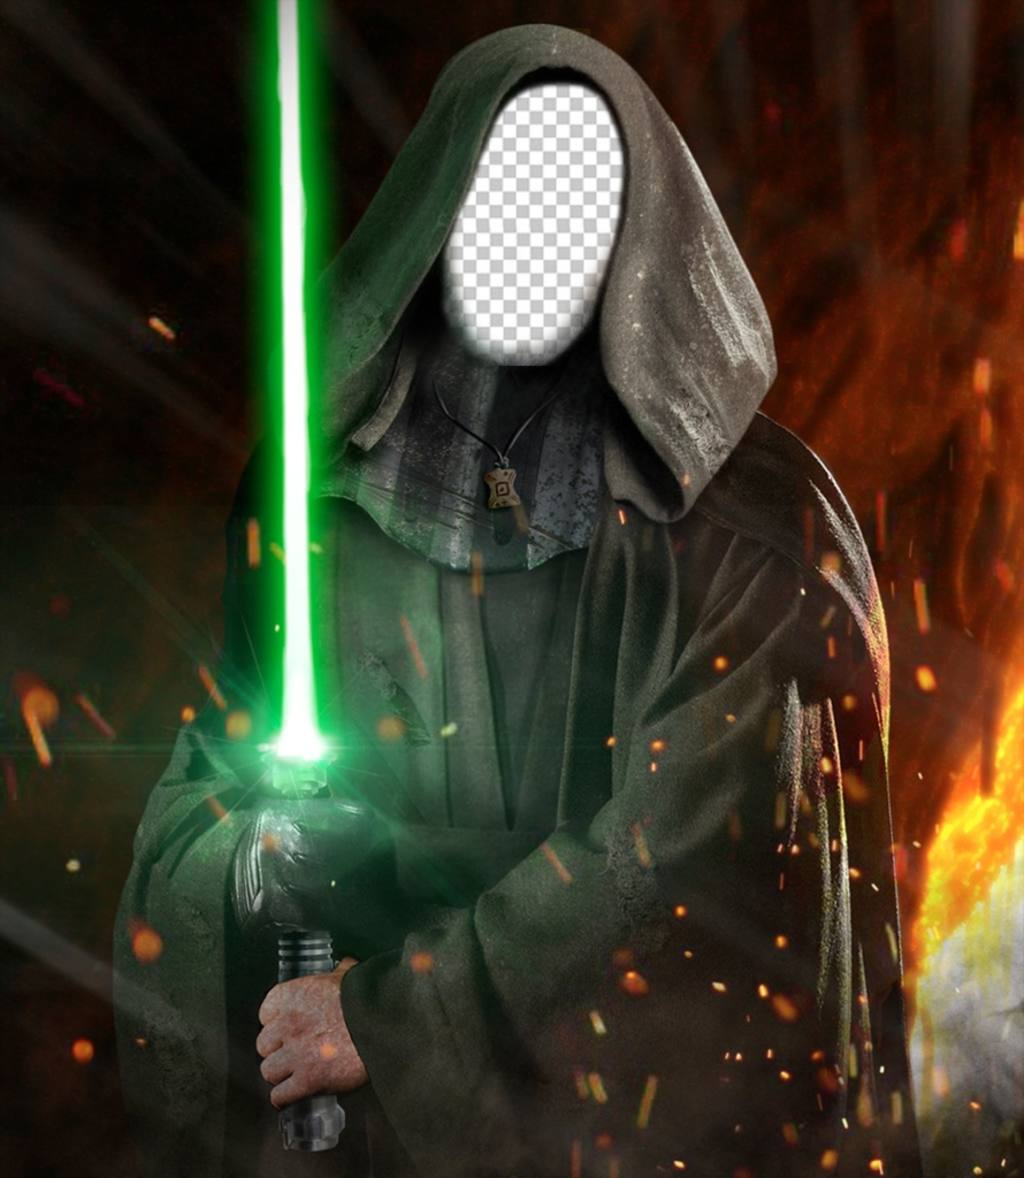 Photomontage to put your photo on the face of Luke Skywalker from Star Wars